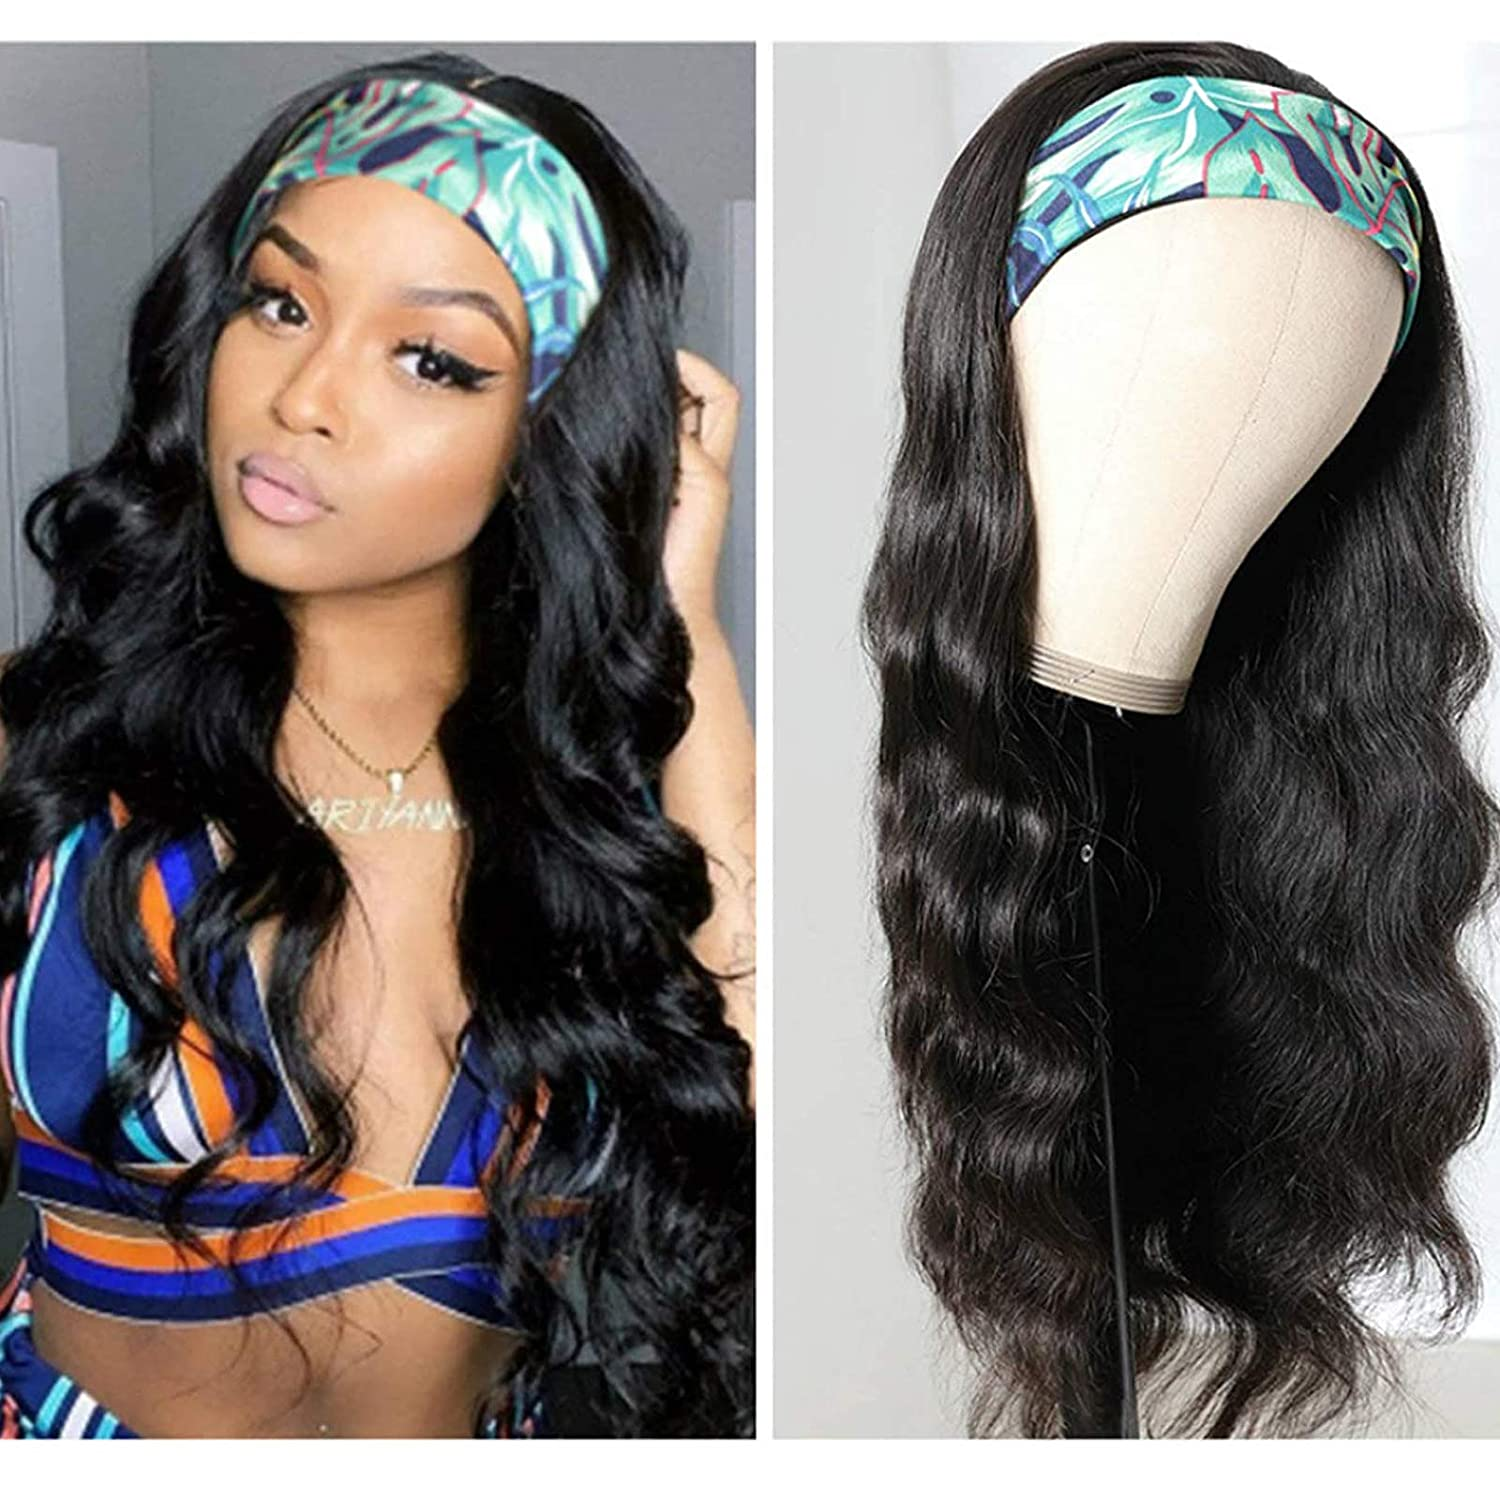 Body Wave Headband Wig Brazilian Remy Human Selling and selling for Women Max 60% OFF Wigs Hair